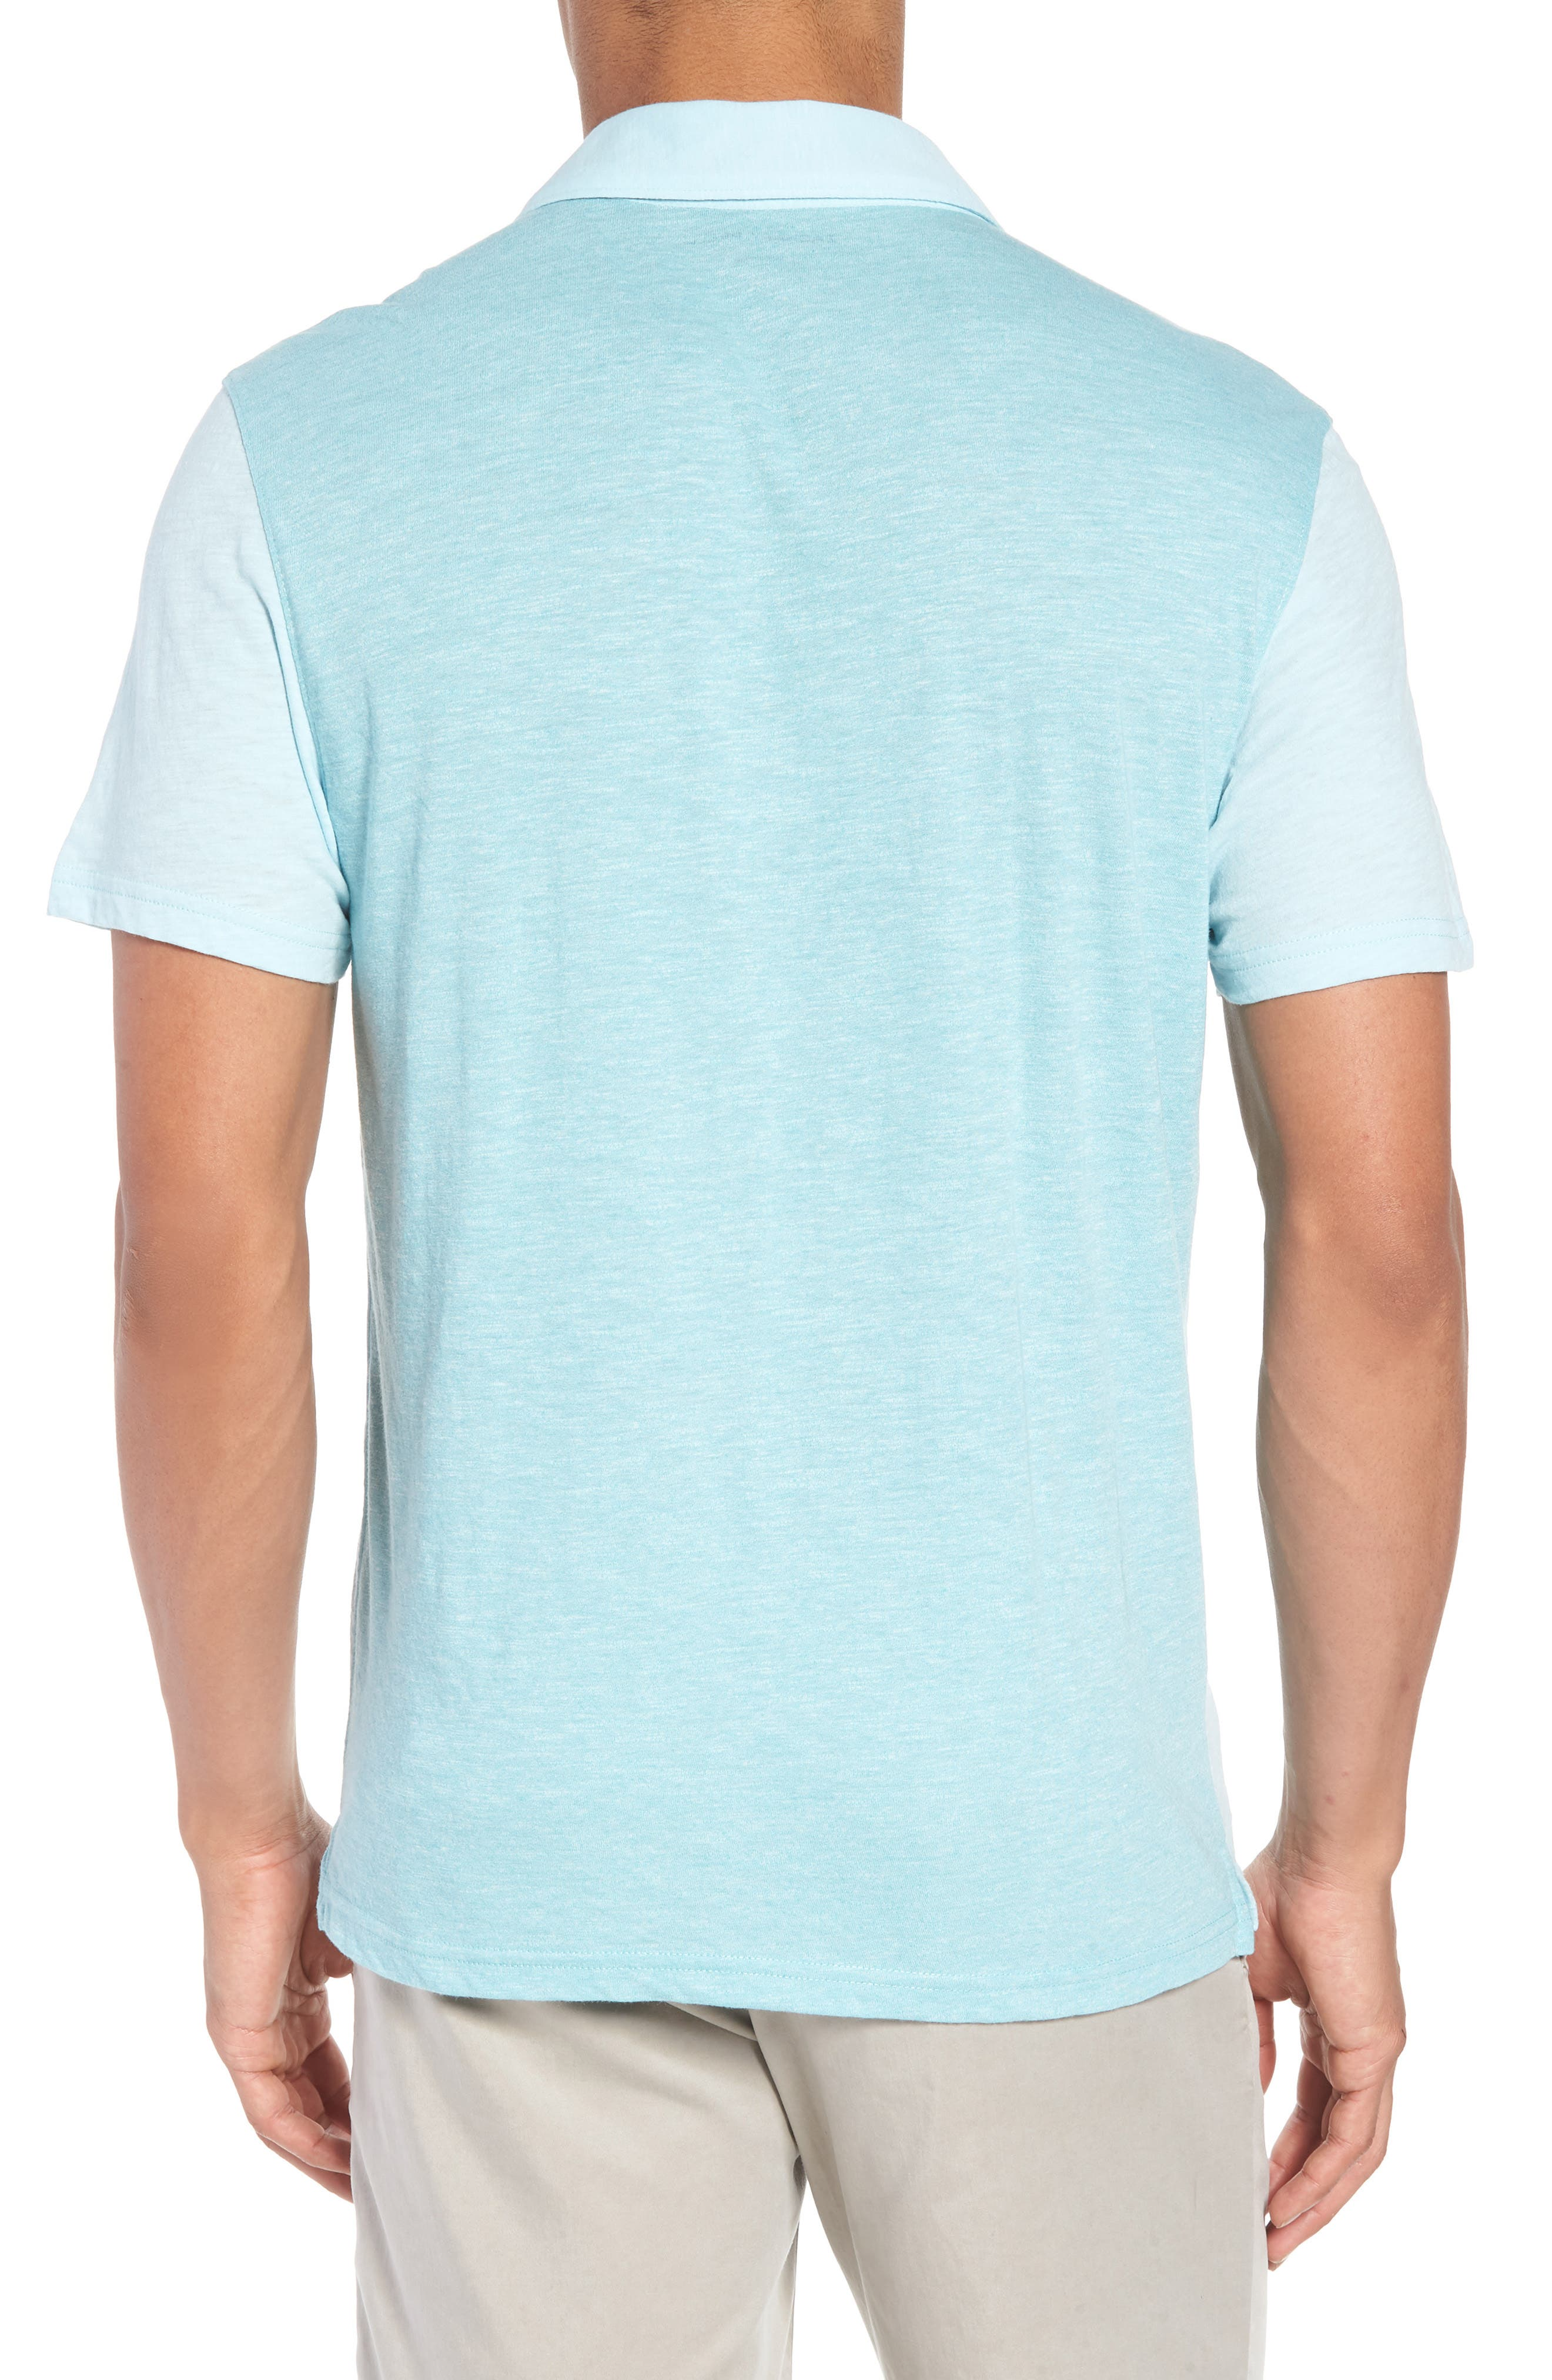 Clover Johnny Collar Polo,                             Alternate thumbnail 2, color,                             Light Turquoise